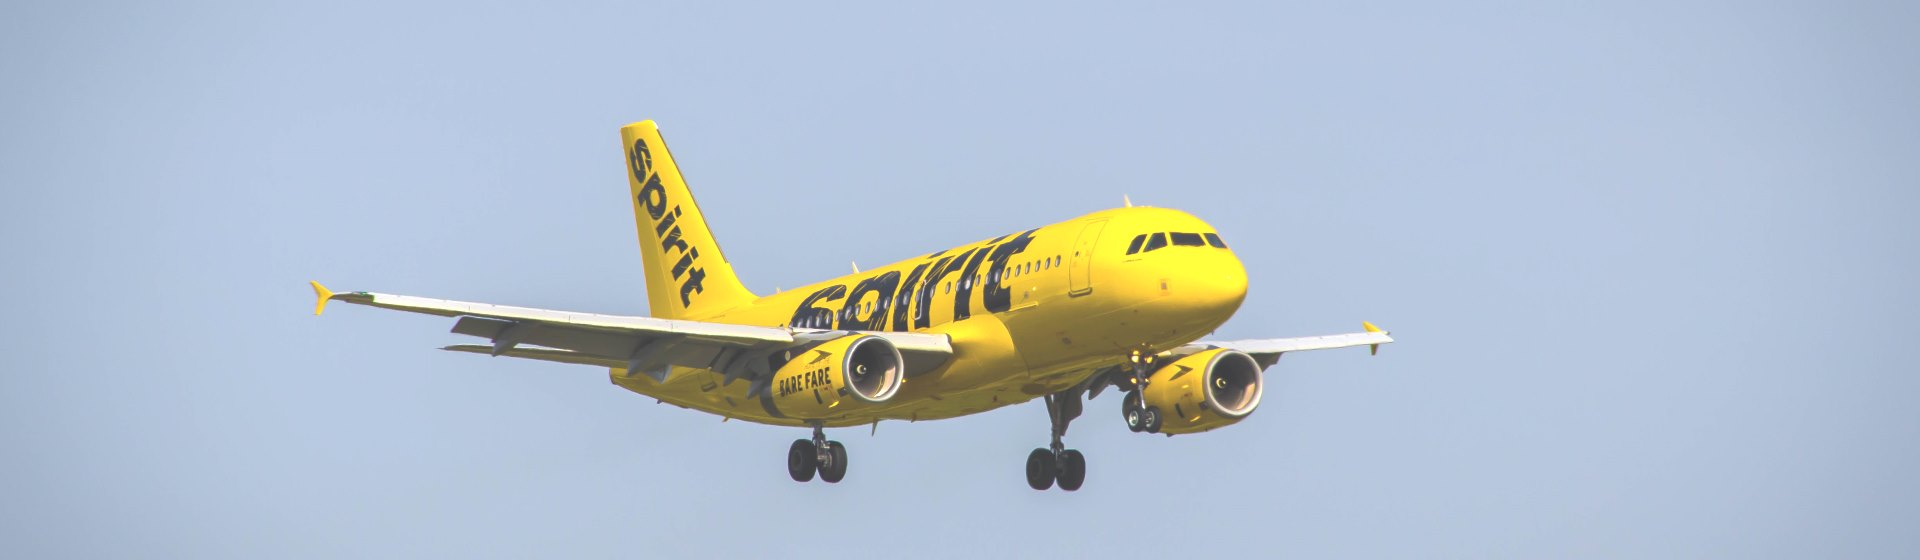 Yellow spirit airplane.